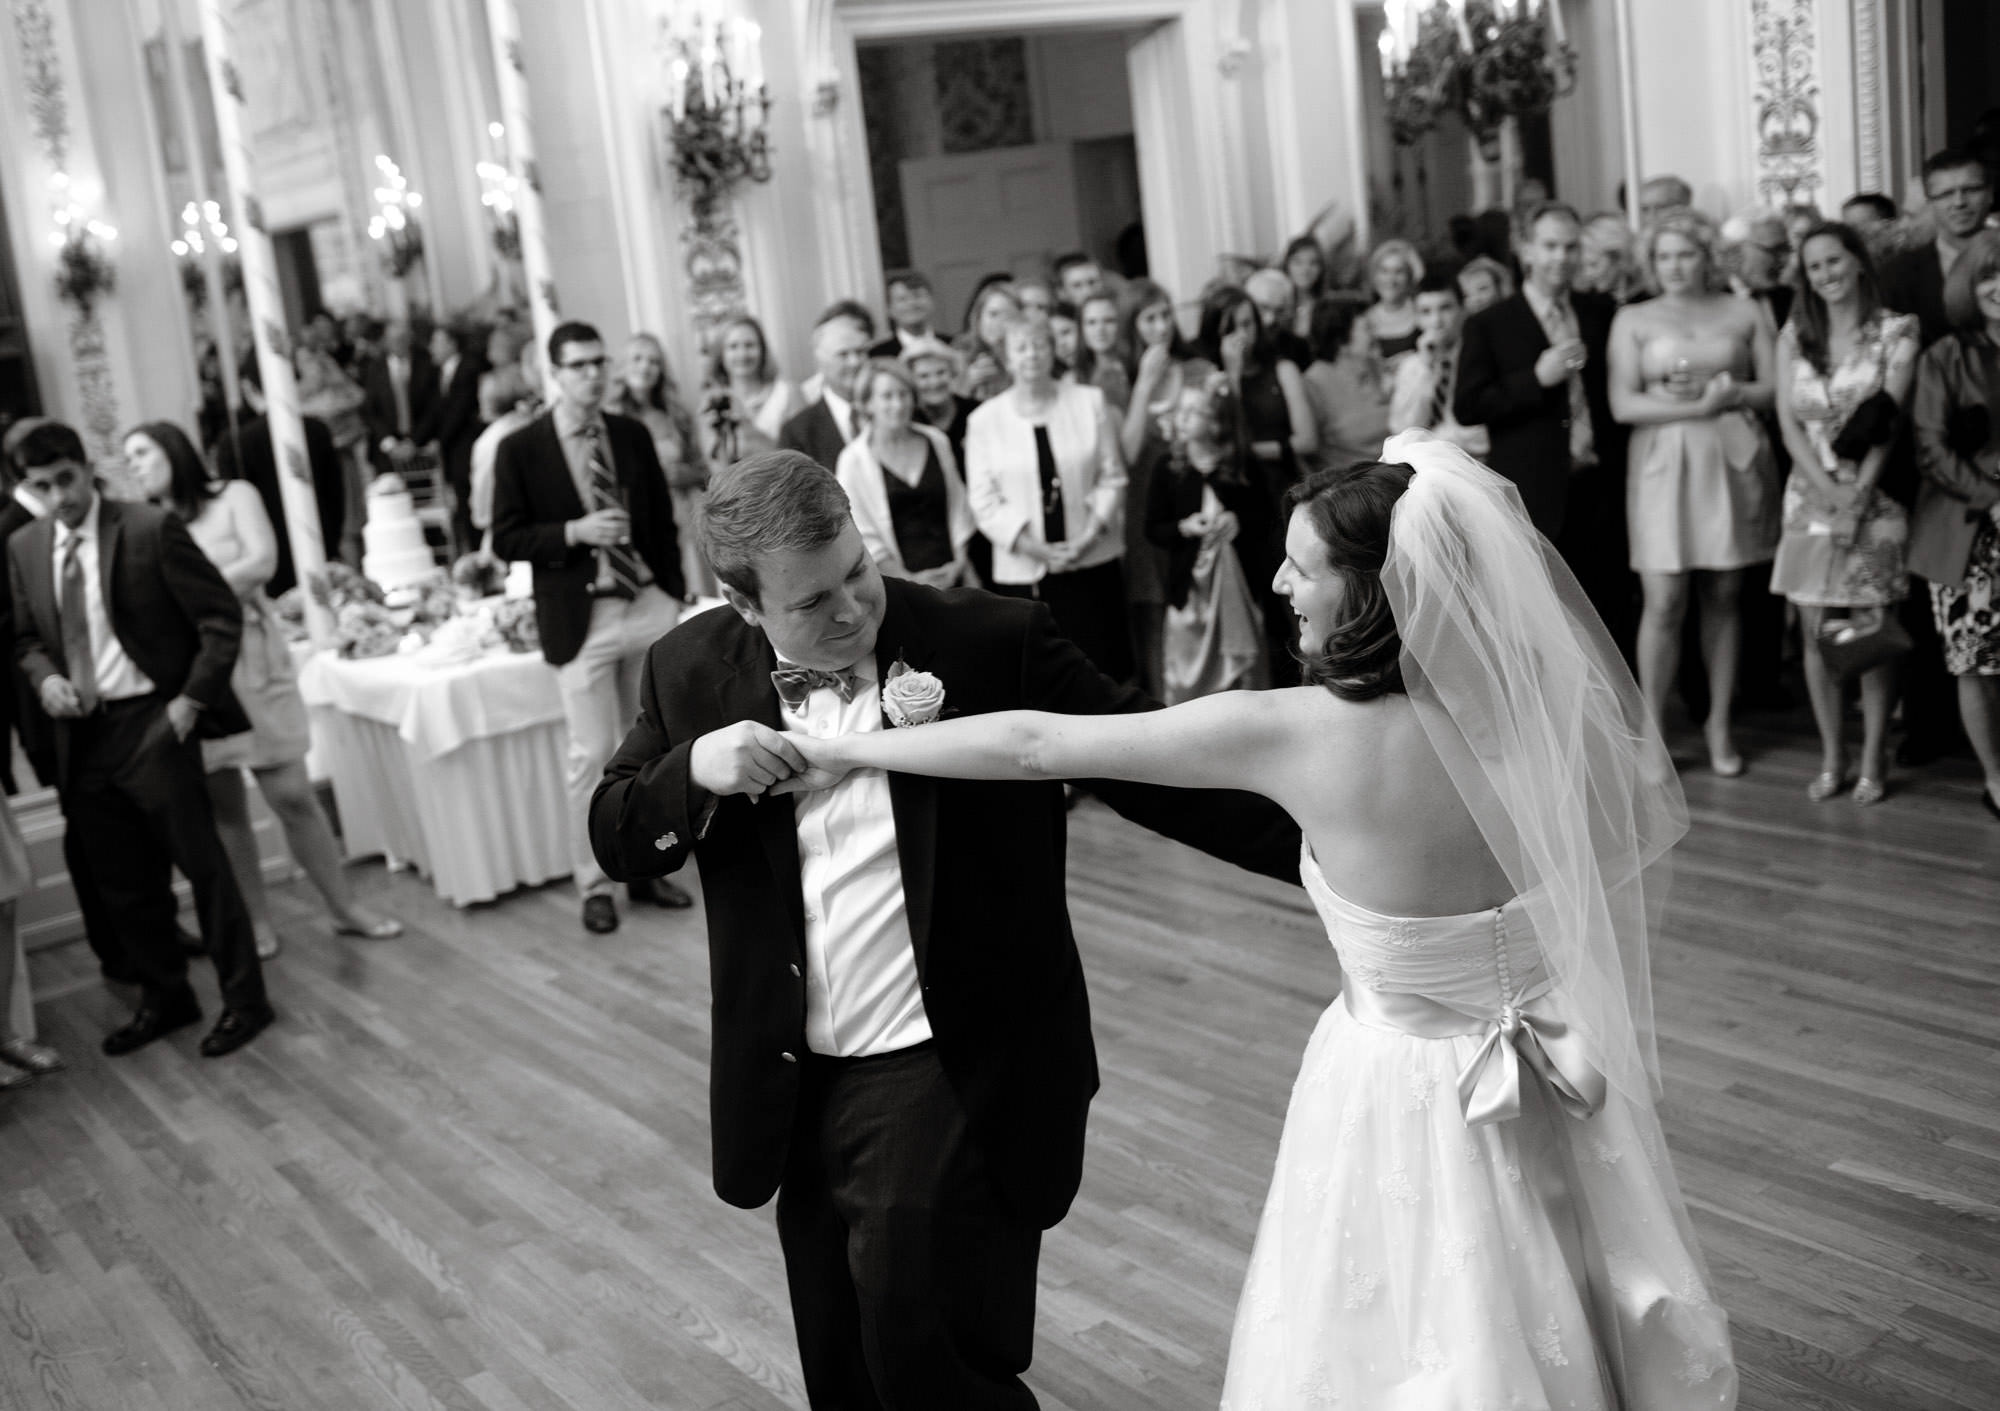 The bride and groom dance during the wedding reception at Sulgrave Club.